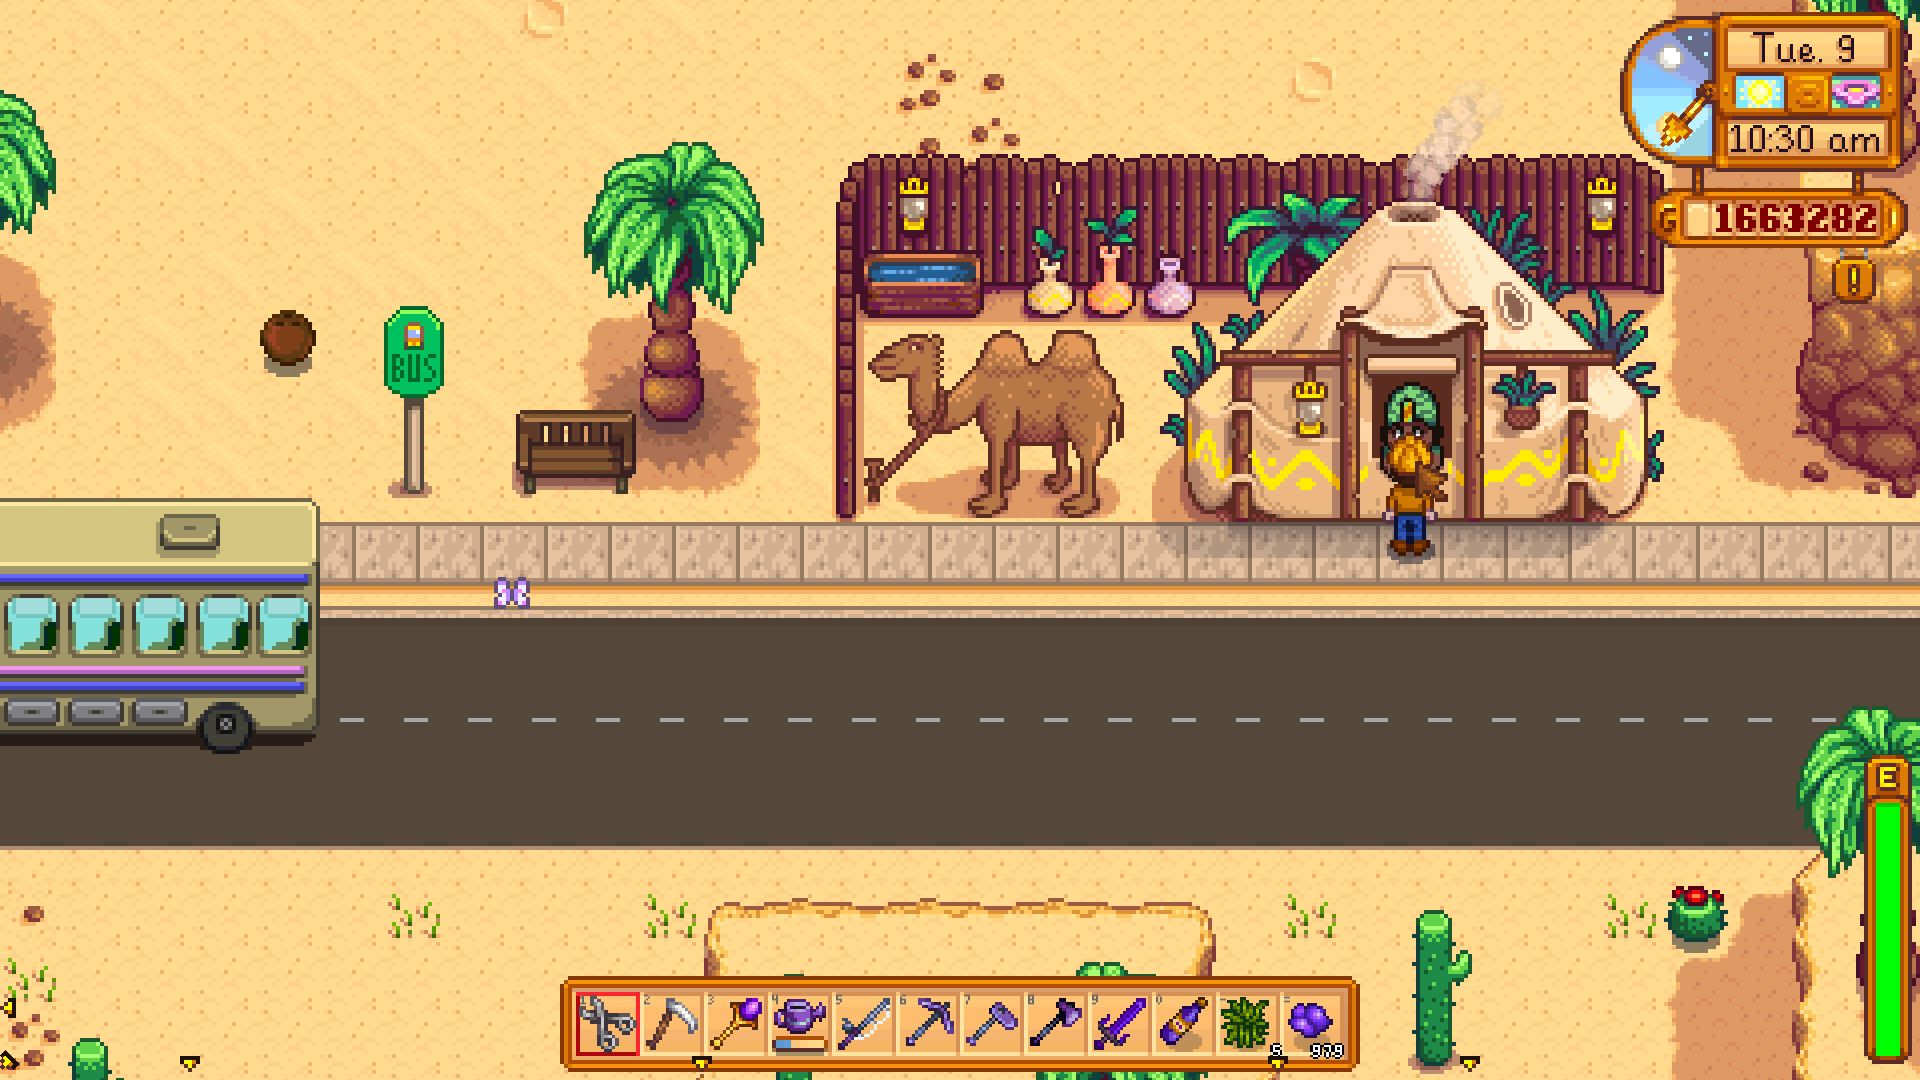 Where To Find New Calico Desert Merchant In Stardew Valley I edited hats.xnb and replaced the default hats with mine. calico desert merchant in stardew valley